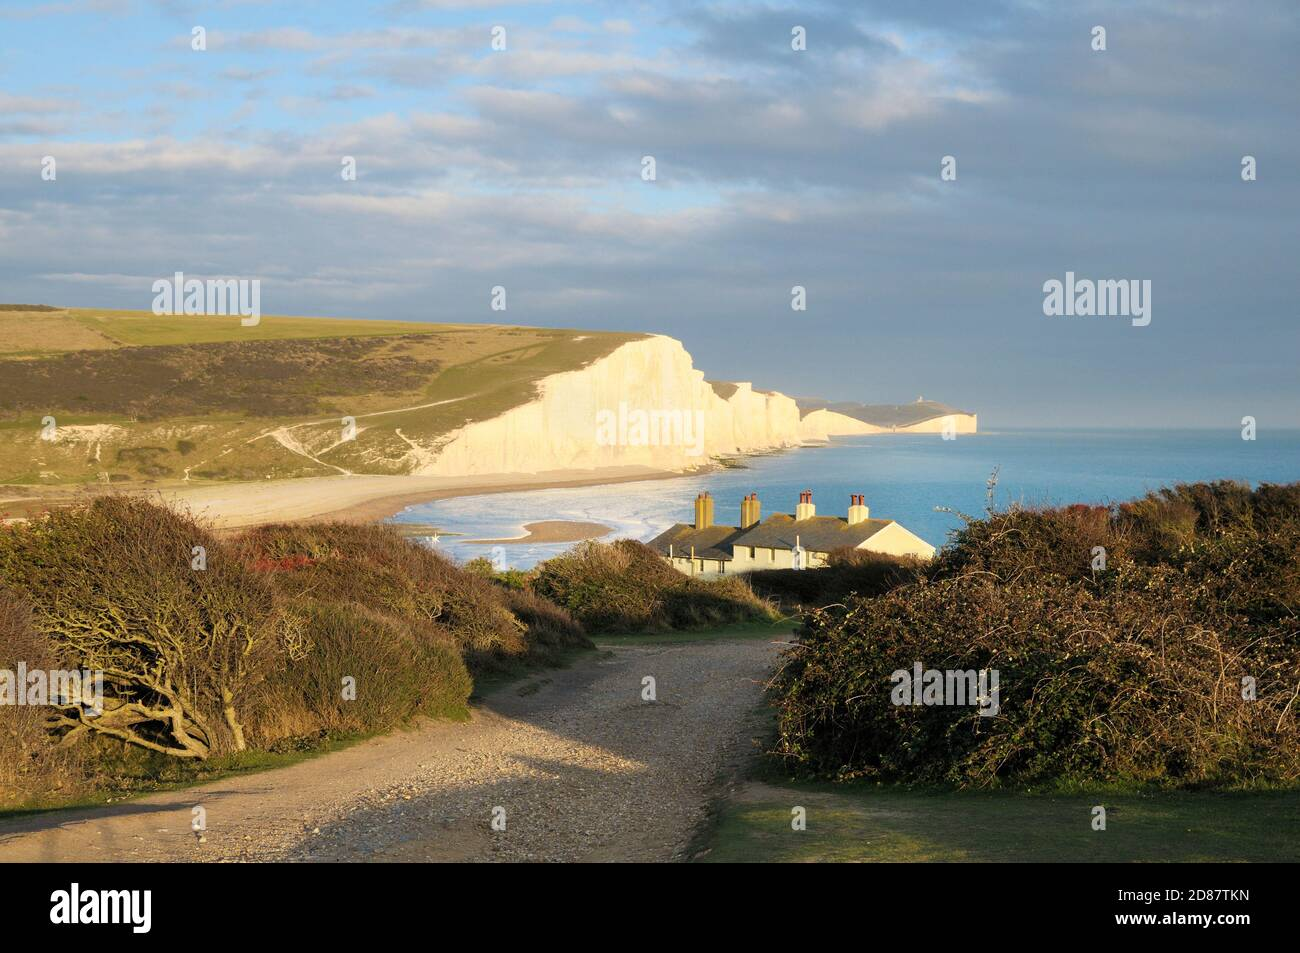 Seven Sisters cliffs and coastguard cottages with Belle Tout Lighthouse in distance, Seaford Head, South Downs National Park, East Sussex, England, UK Stock Photo